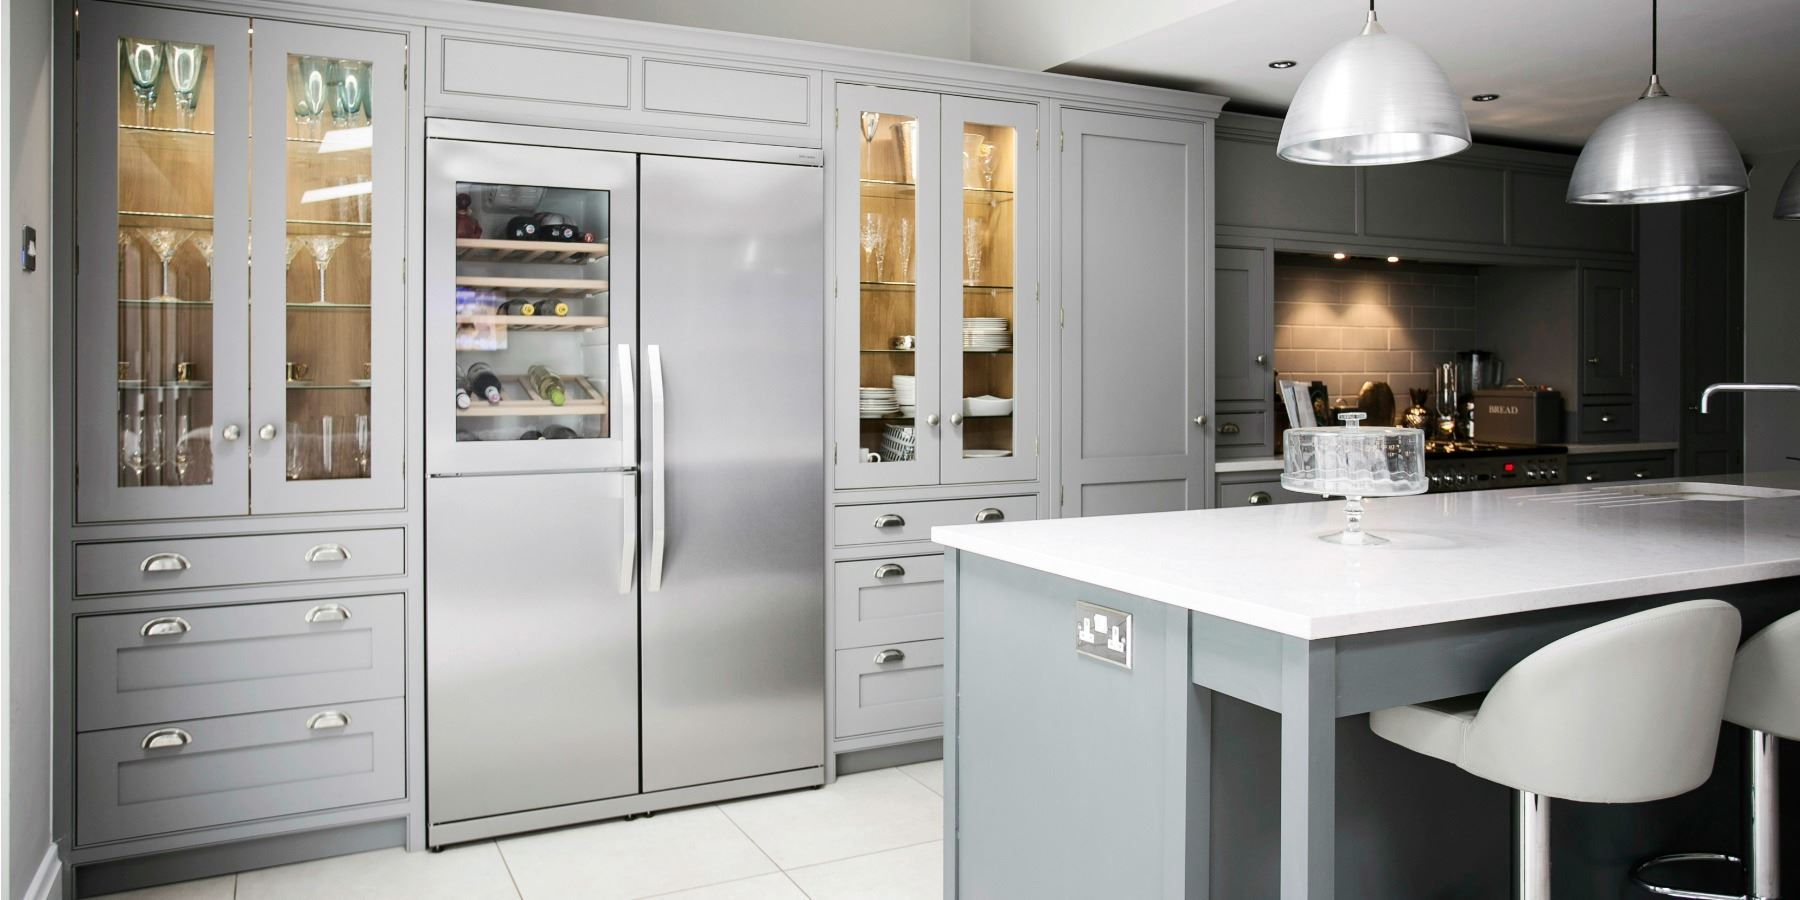 Burlanes created a sophisticated, sociable kitchen  -